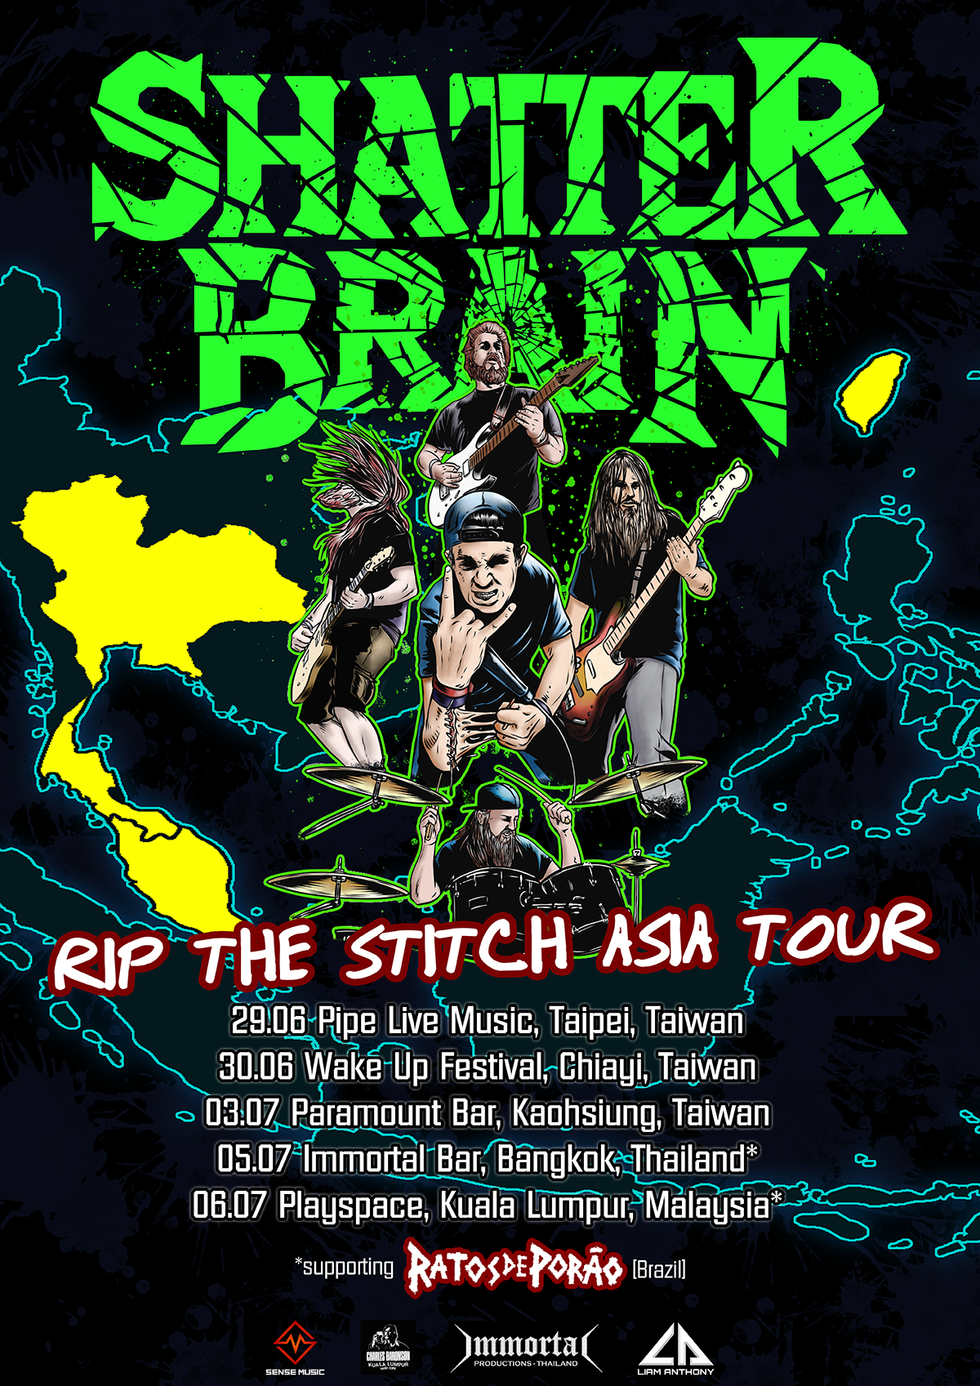 SHATTER BRAIN ANNOUNCE ASIA TOUR